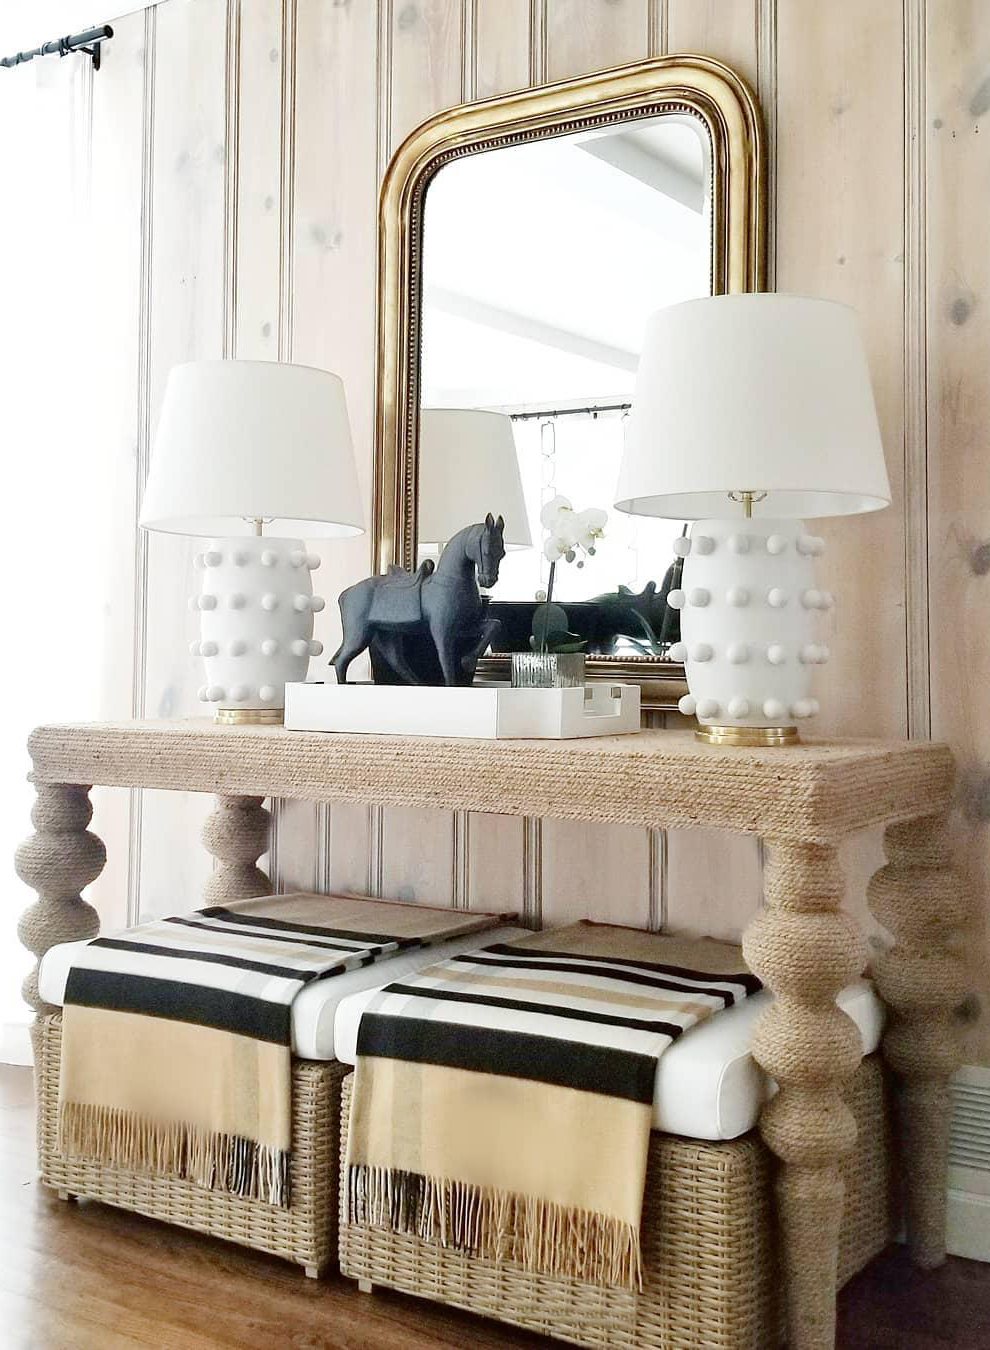 Best sellers we love the way ashstinteriors styled linden medium table lamps by kelly wearstler in this vignette also lamp pinterest interior rh